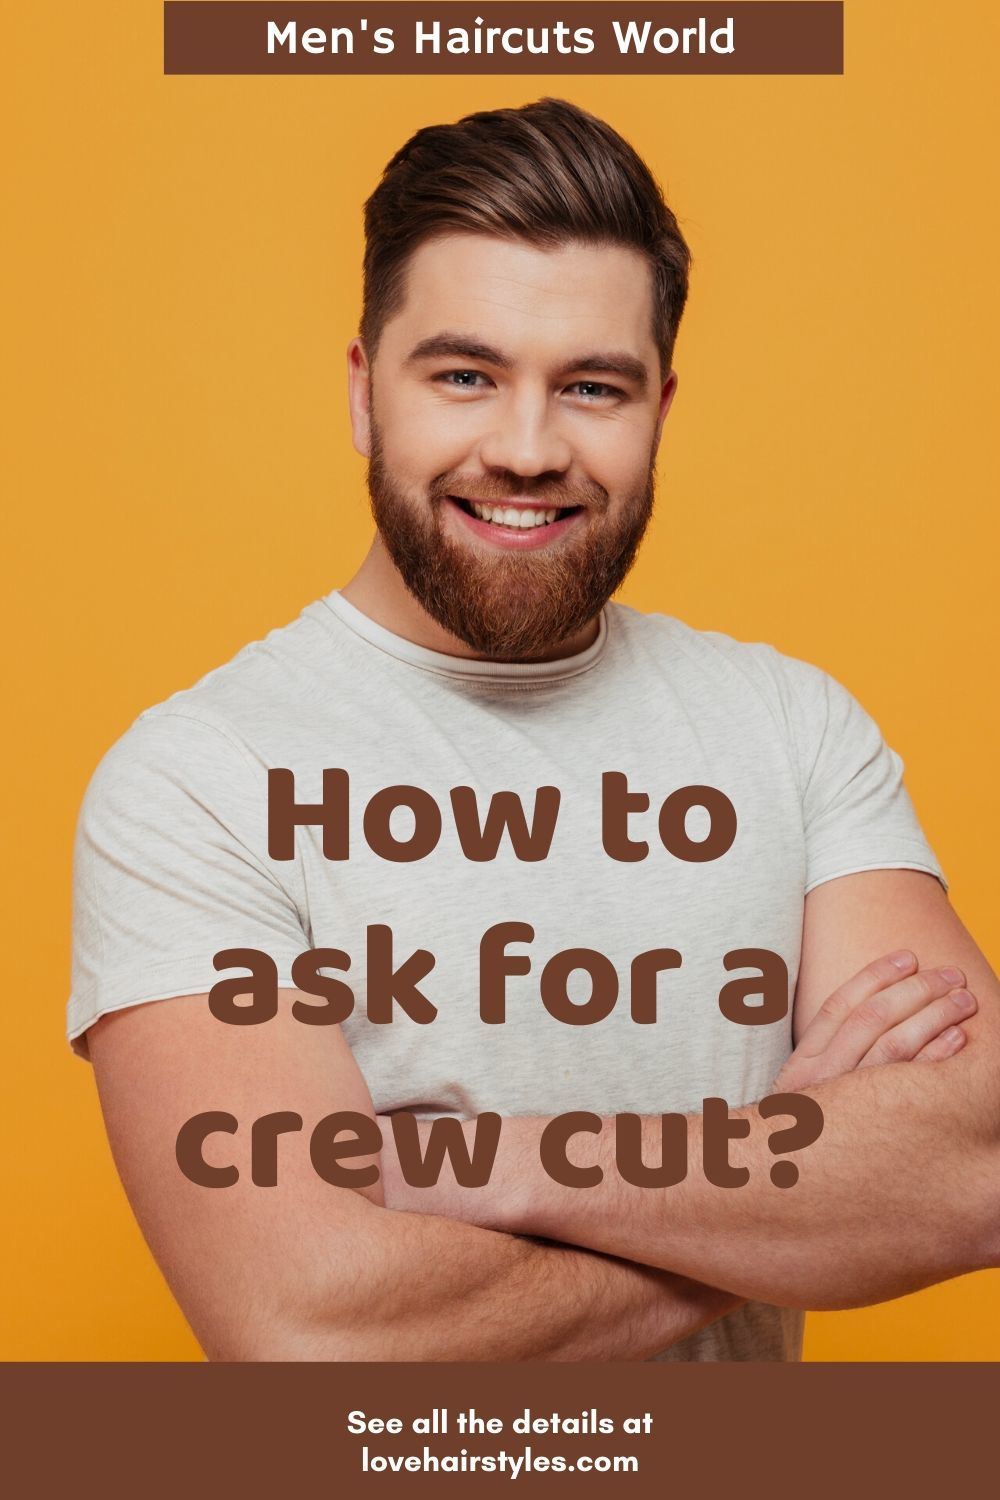 How To Ask For A Crew Cut?